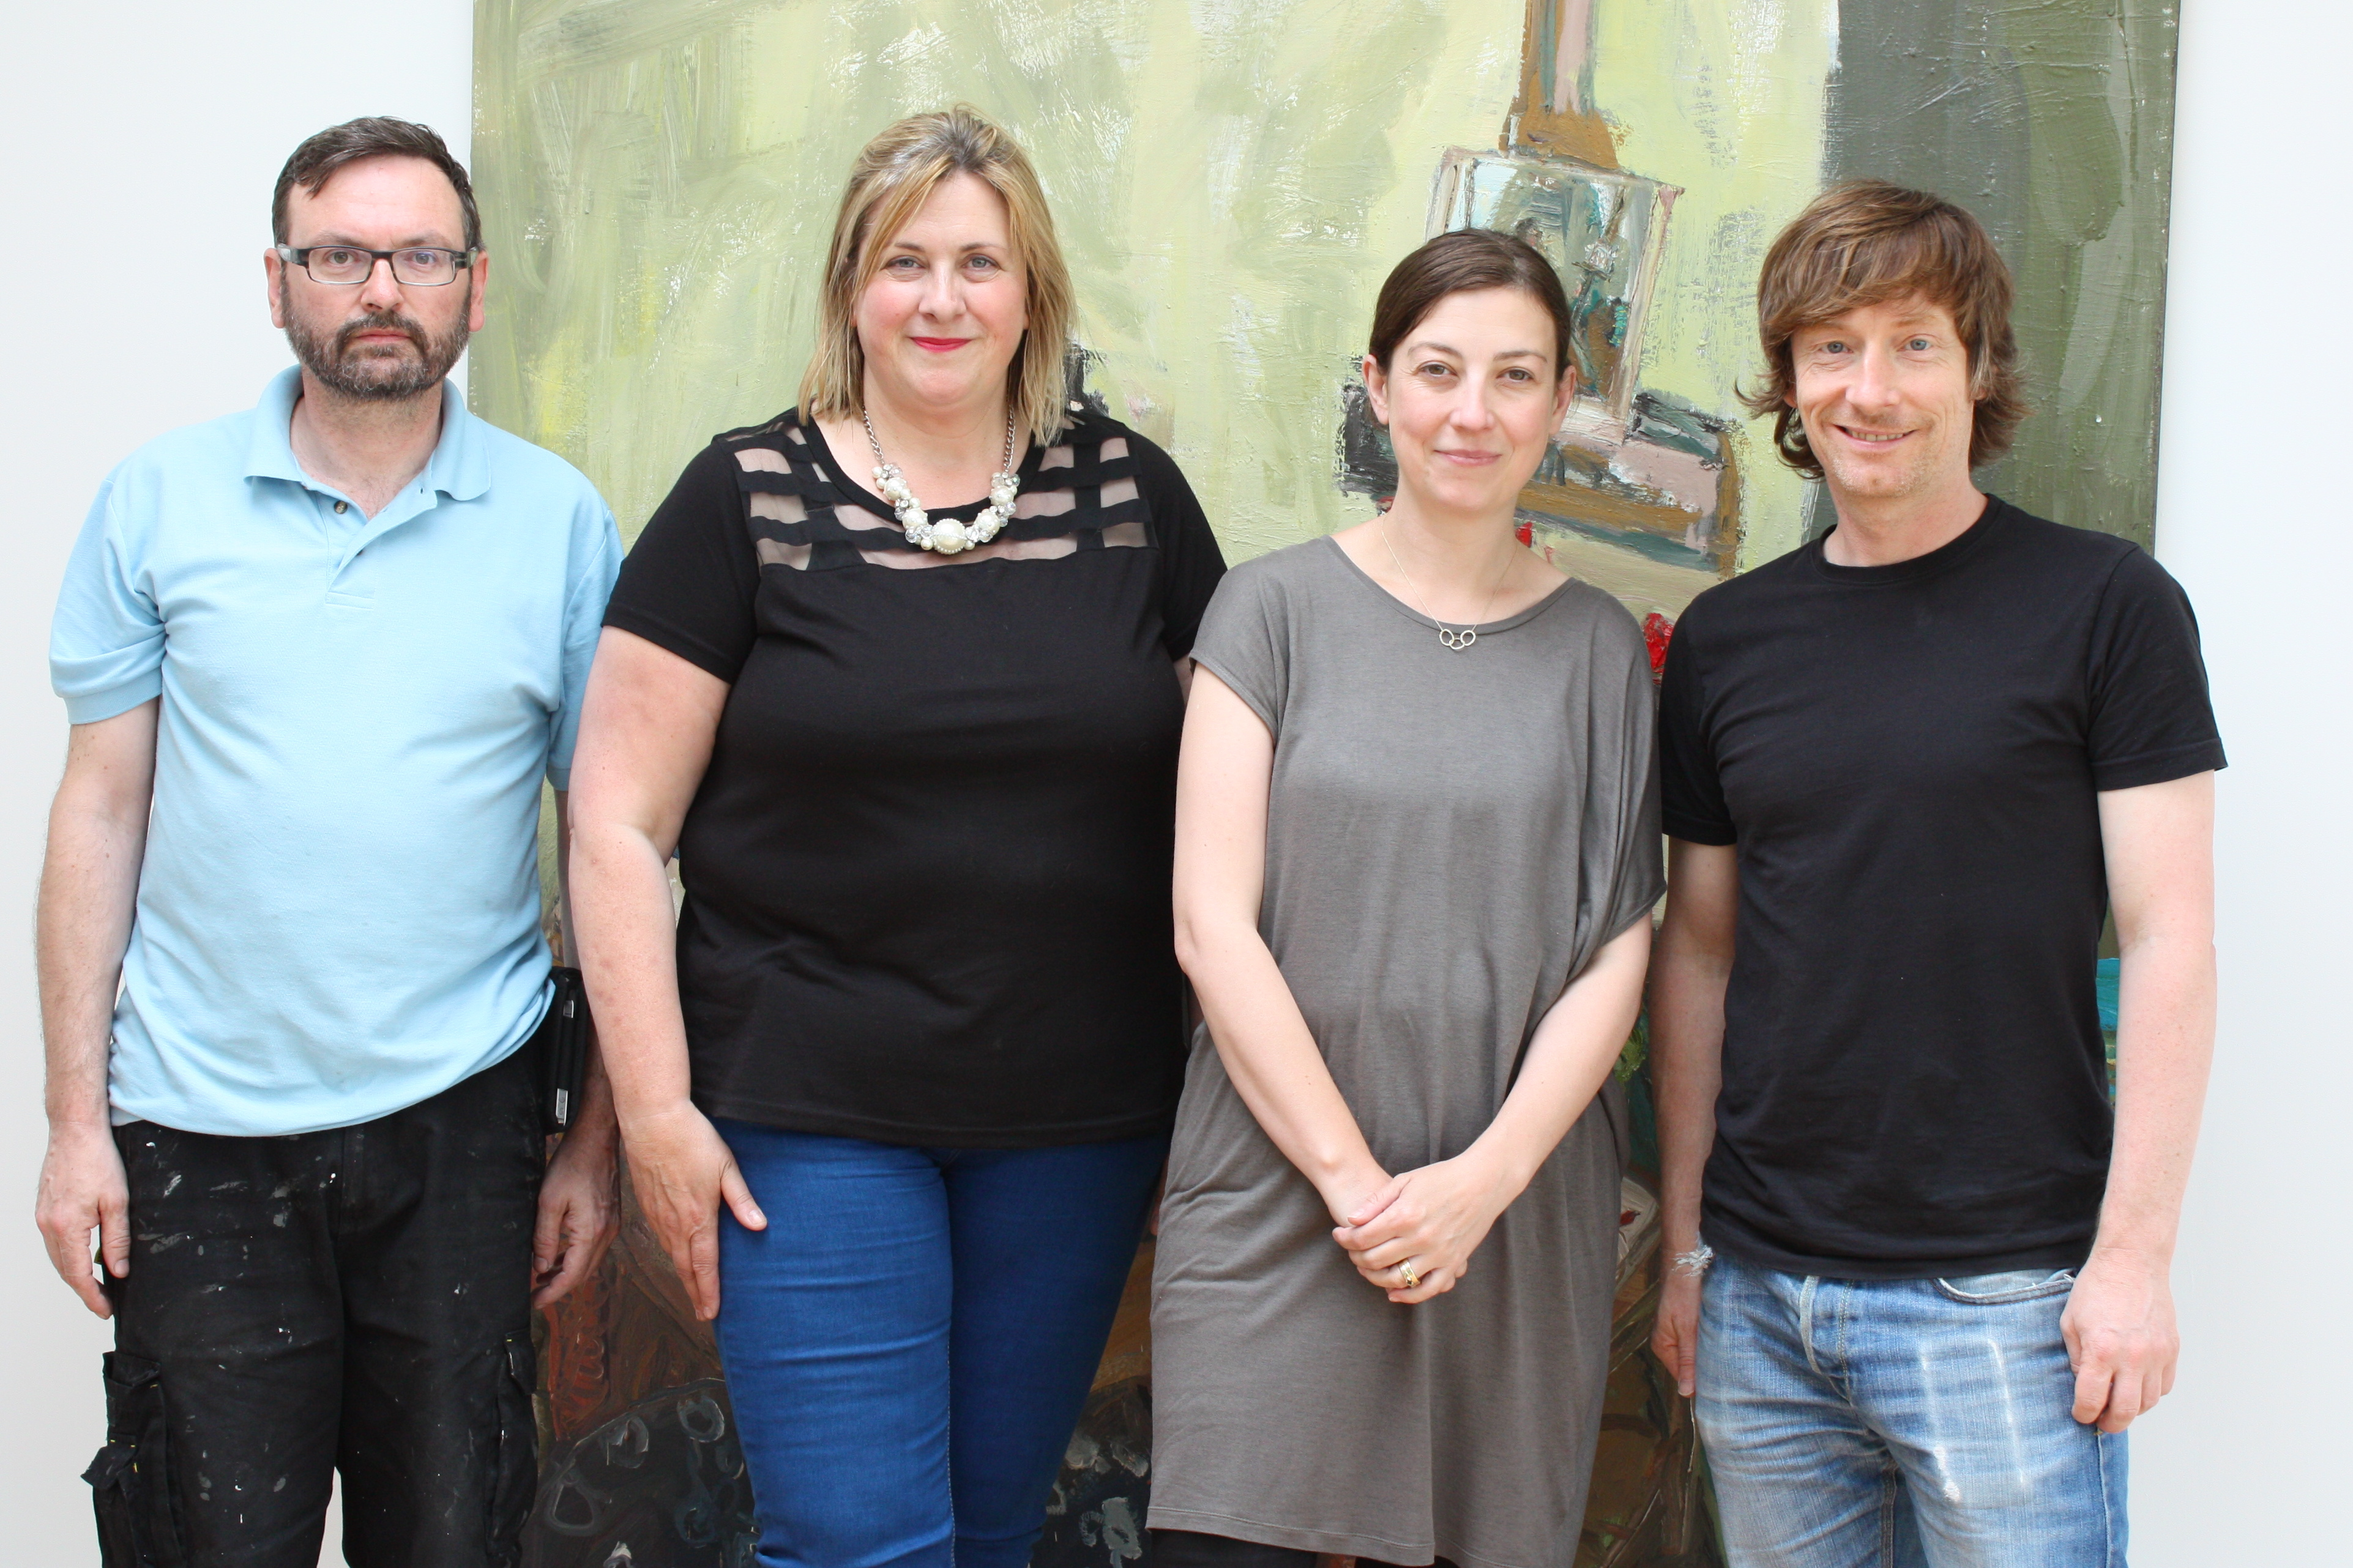 The Imma arthouse team, Nick Miller Arthouse 2014 Image Lisa Fingleton